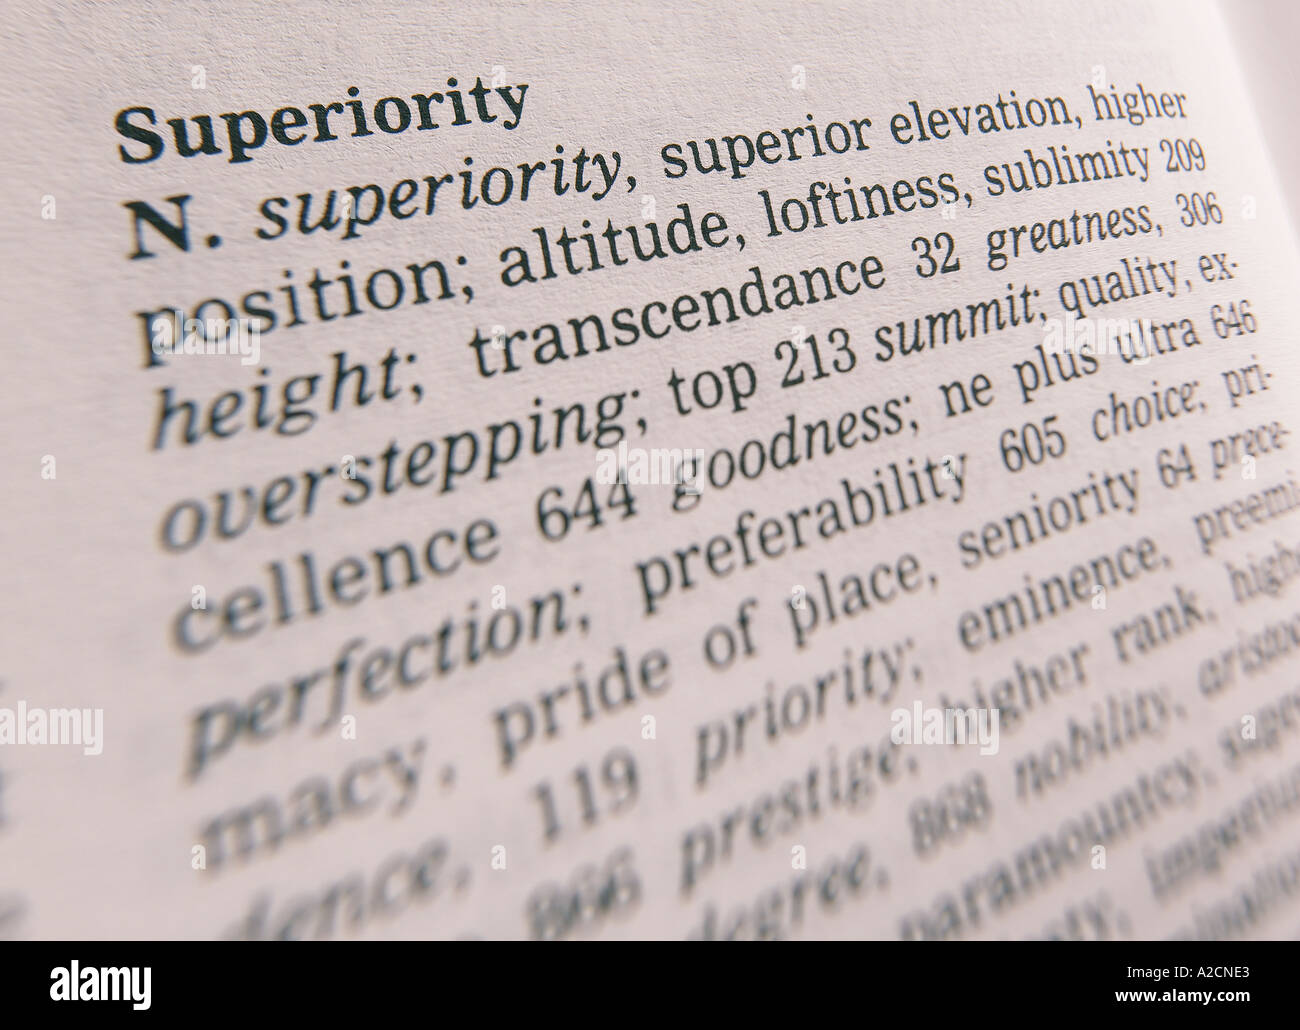 THESAURUS PAGE SHOWING DEFINITION OF WORD SUPERIORITY